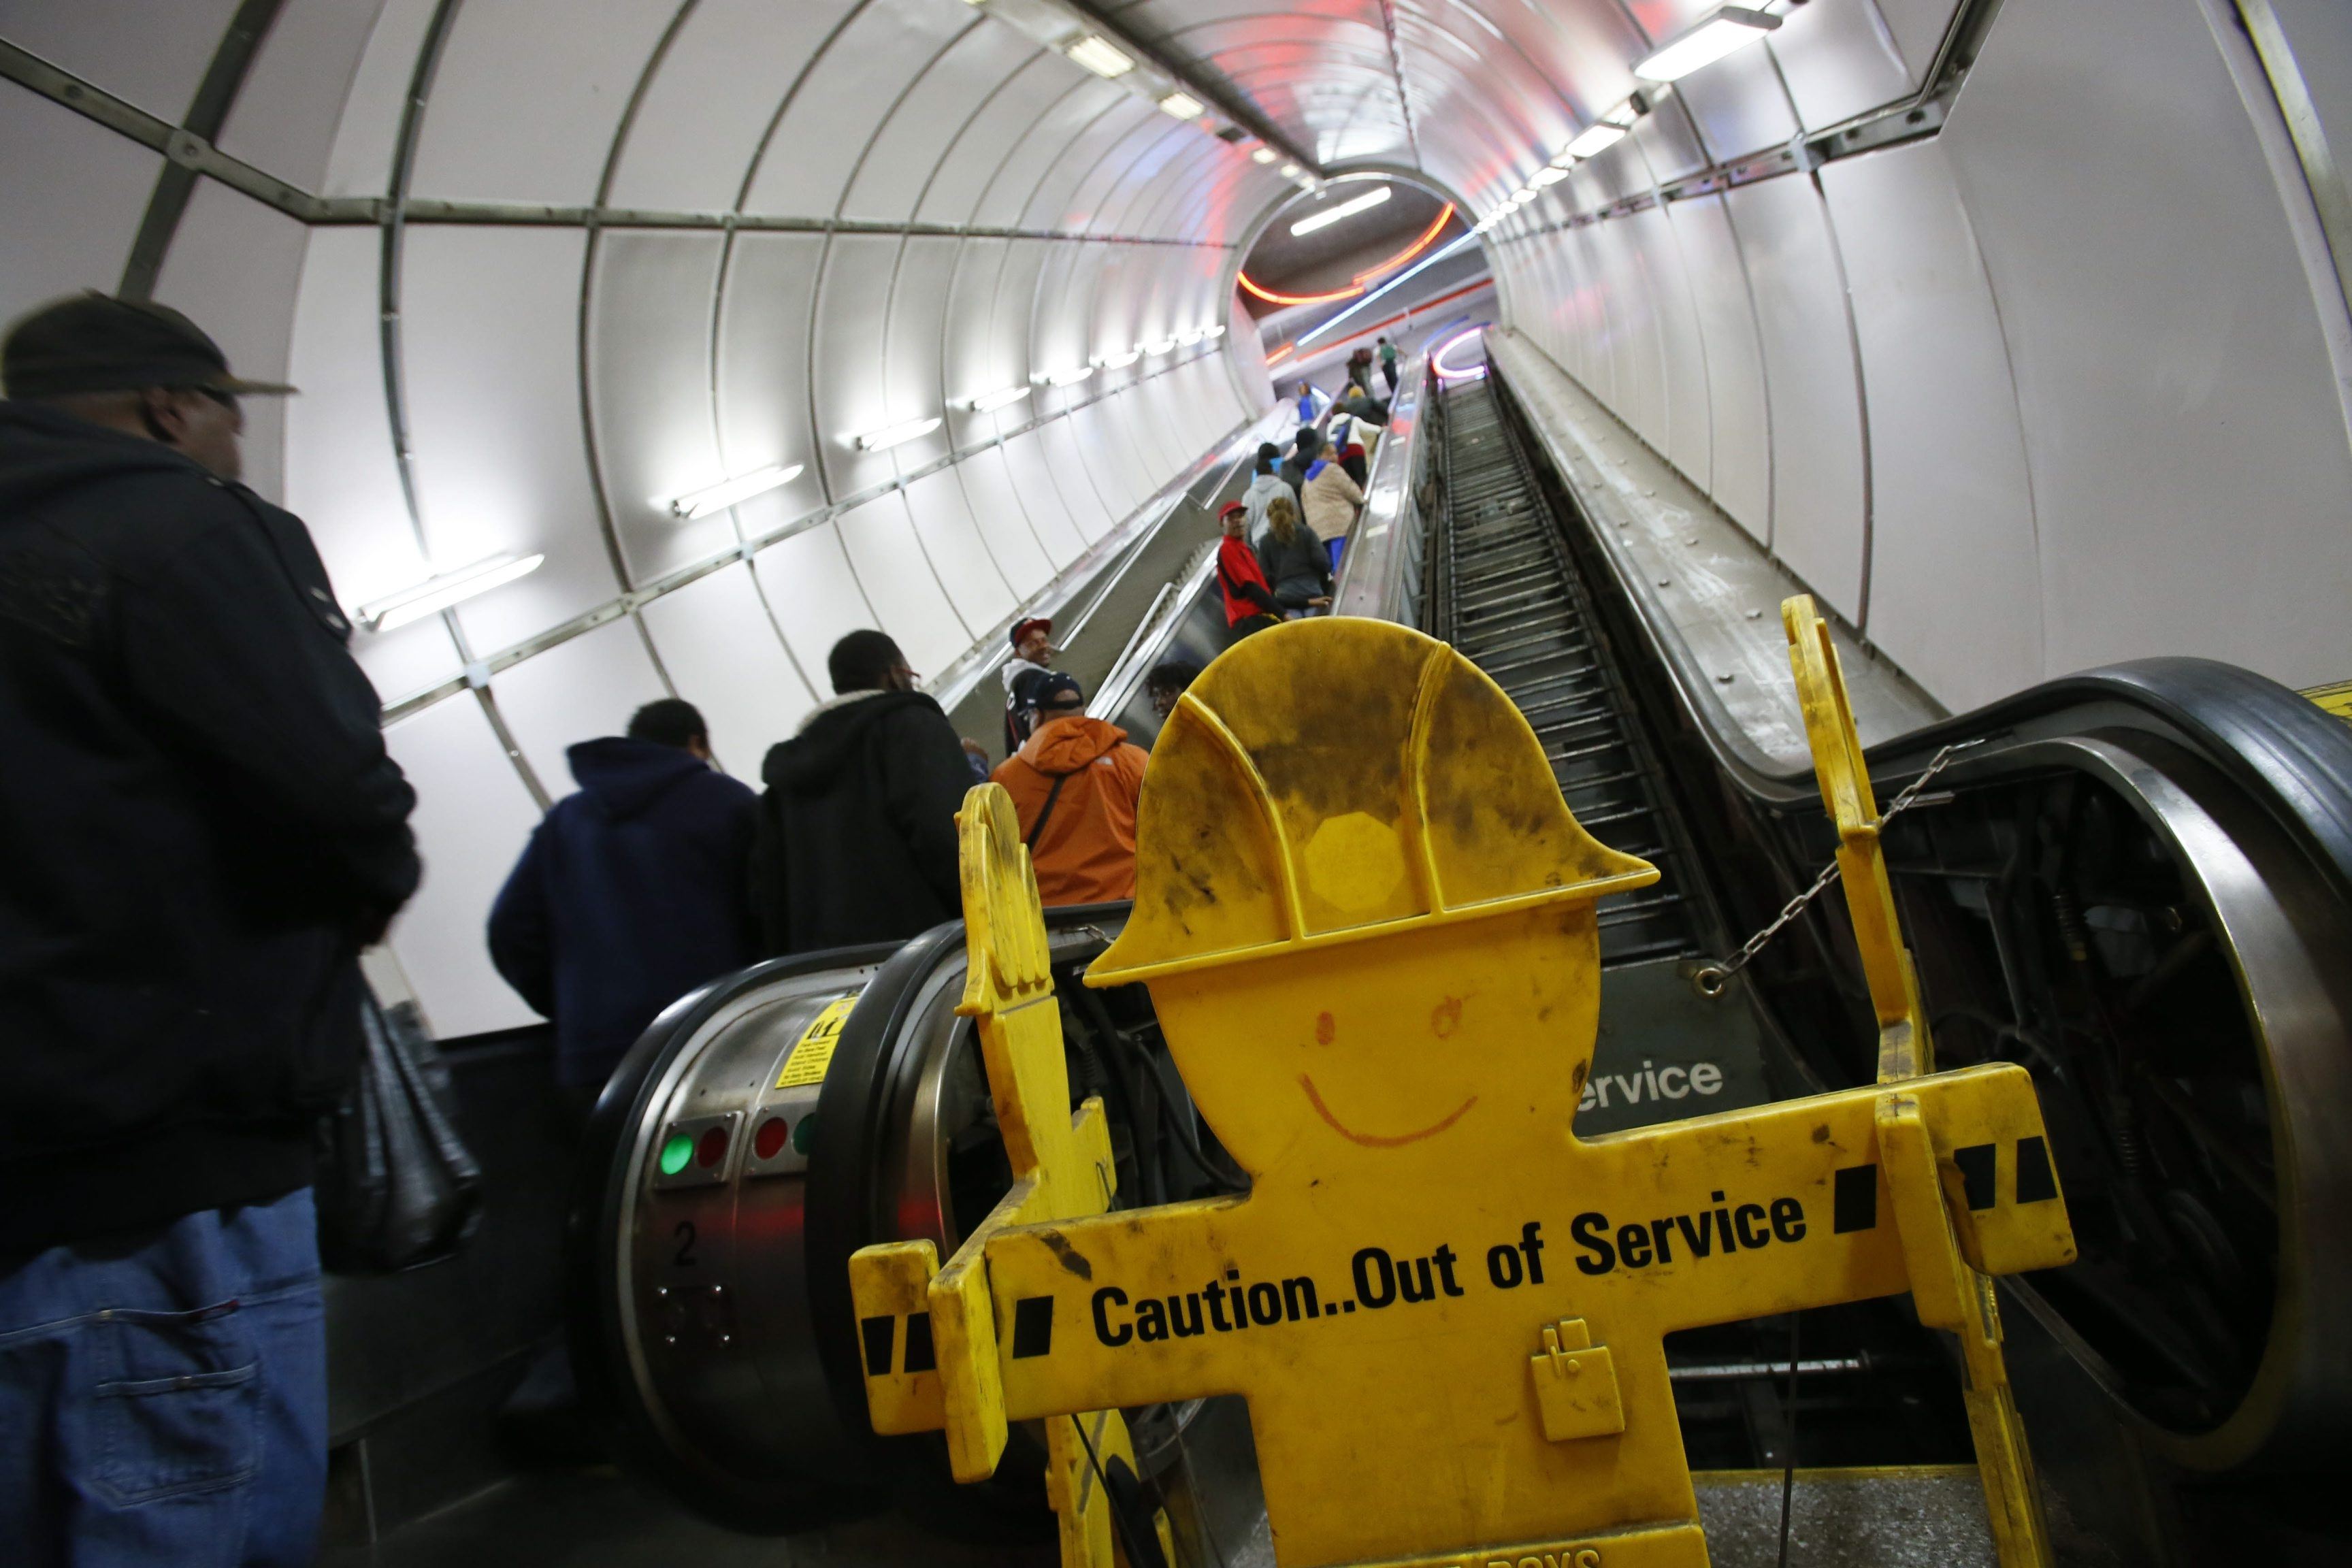 Derek Gee/Buffalo News    An escalator at the Metro Rail's University Station has been out of service for four months.